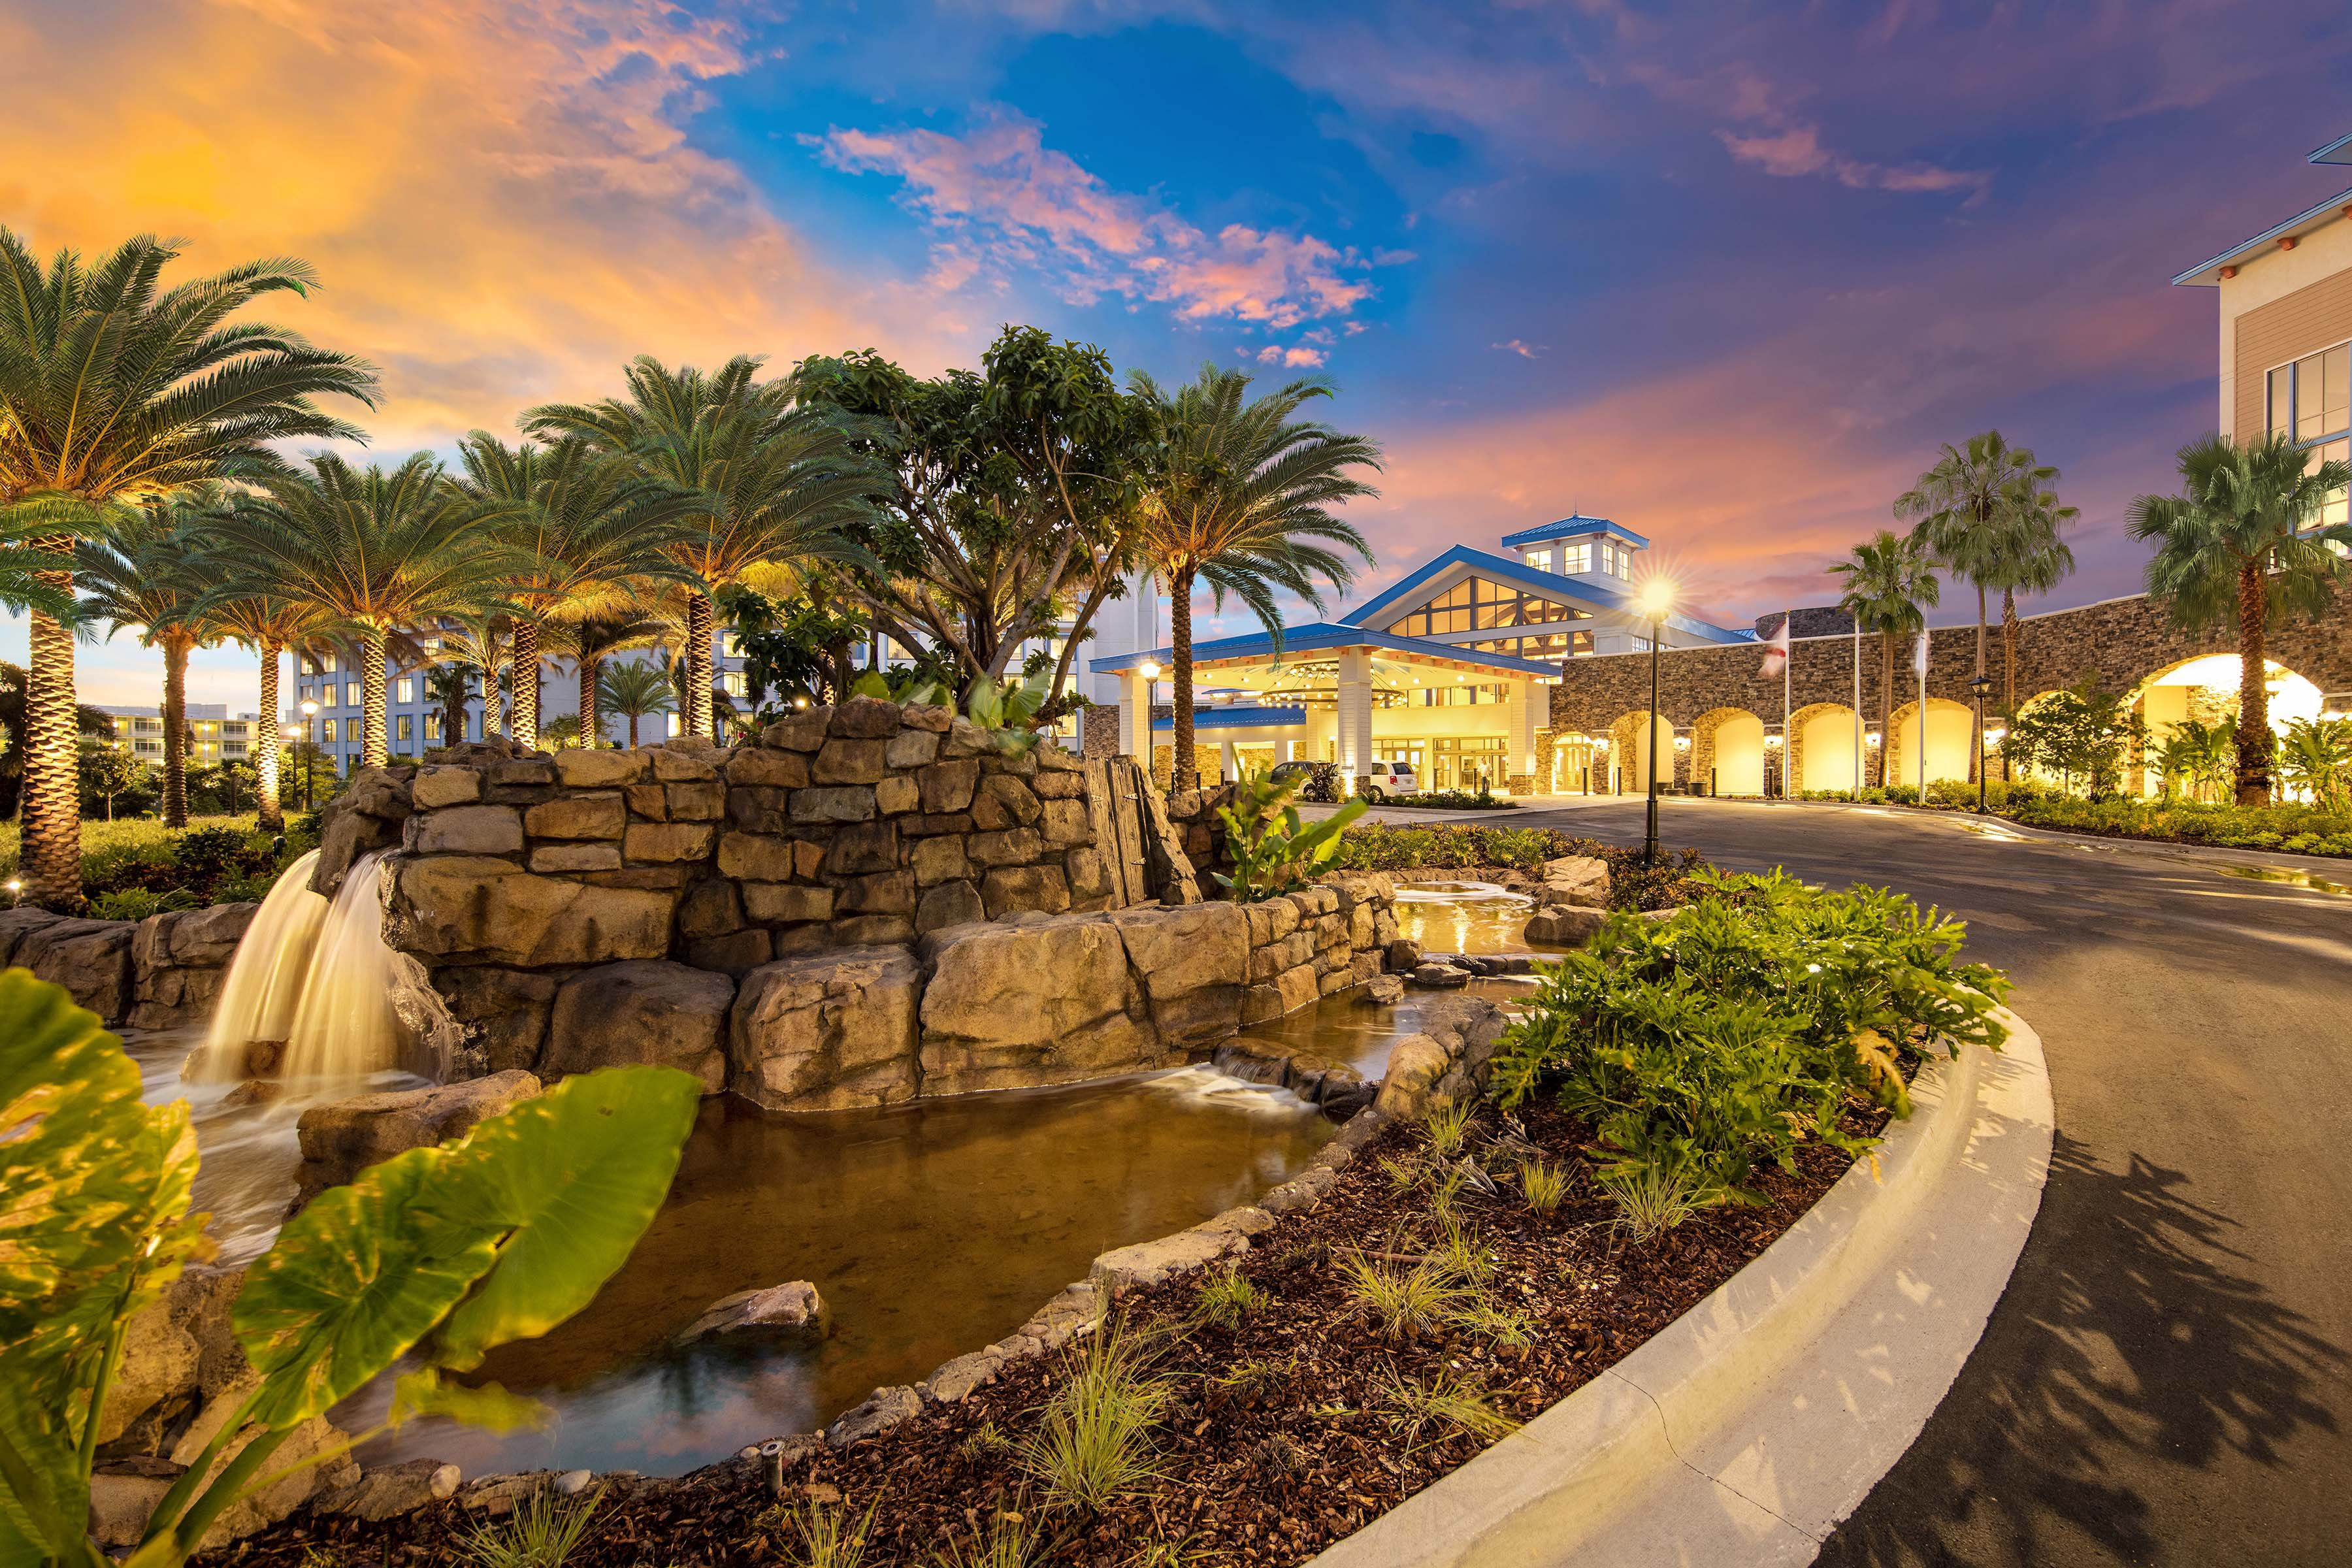 The Best Hotels at Universal Orlando